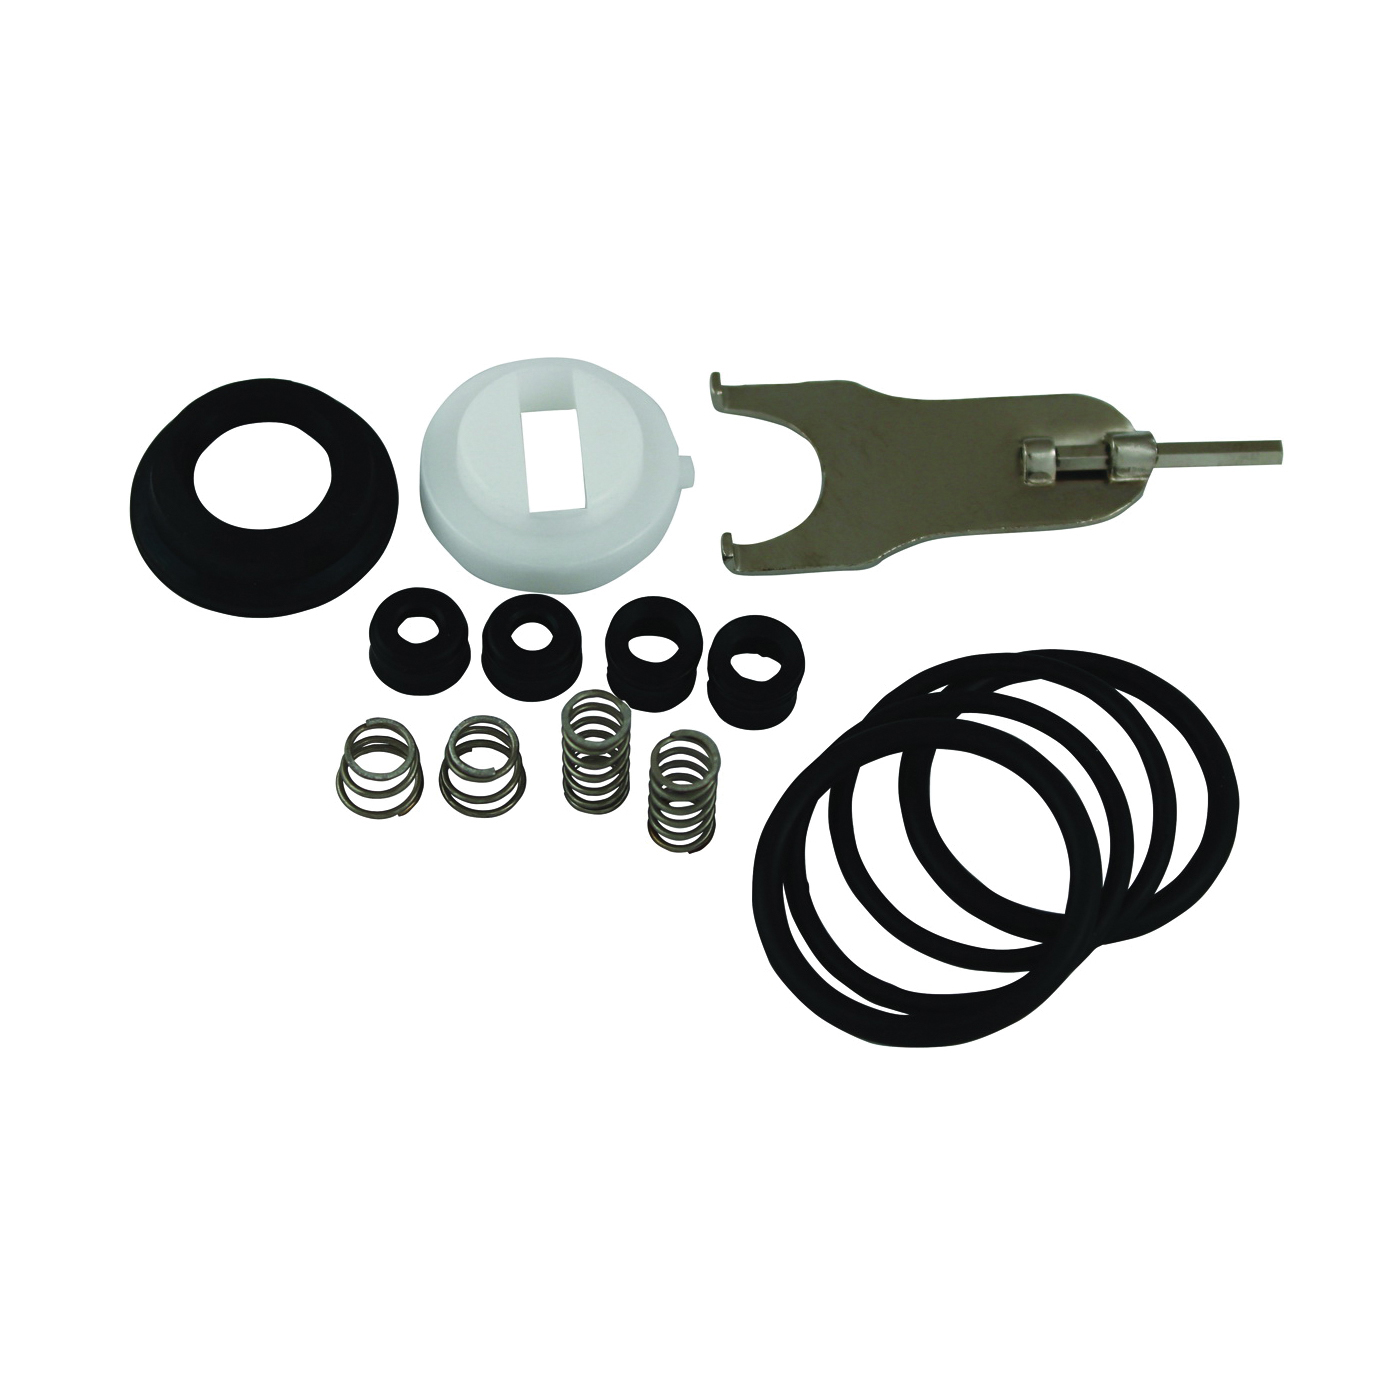 Picture of Plumb Pak PP808-74 Faucet Repair Kit, For: Delta/Del Dial Faucets with Swing Spout